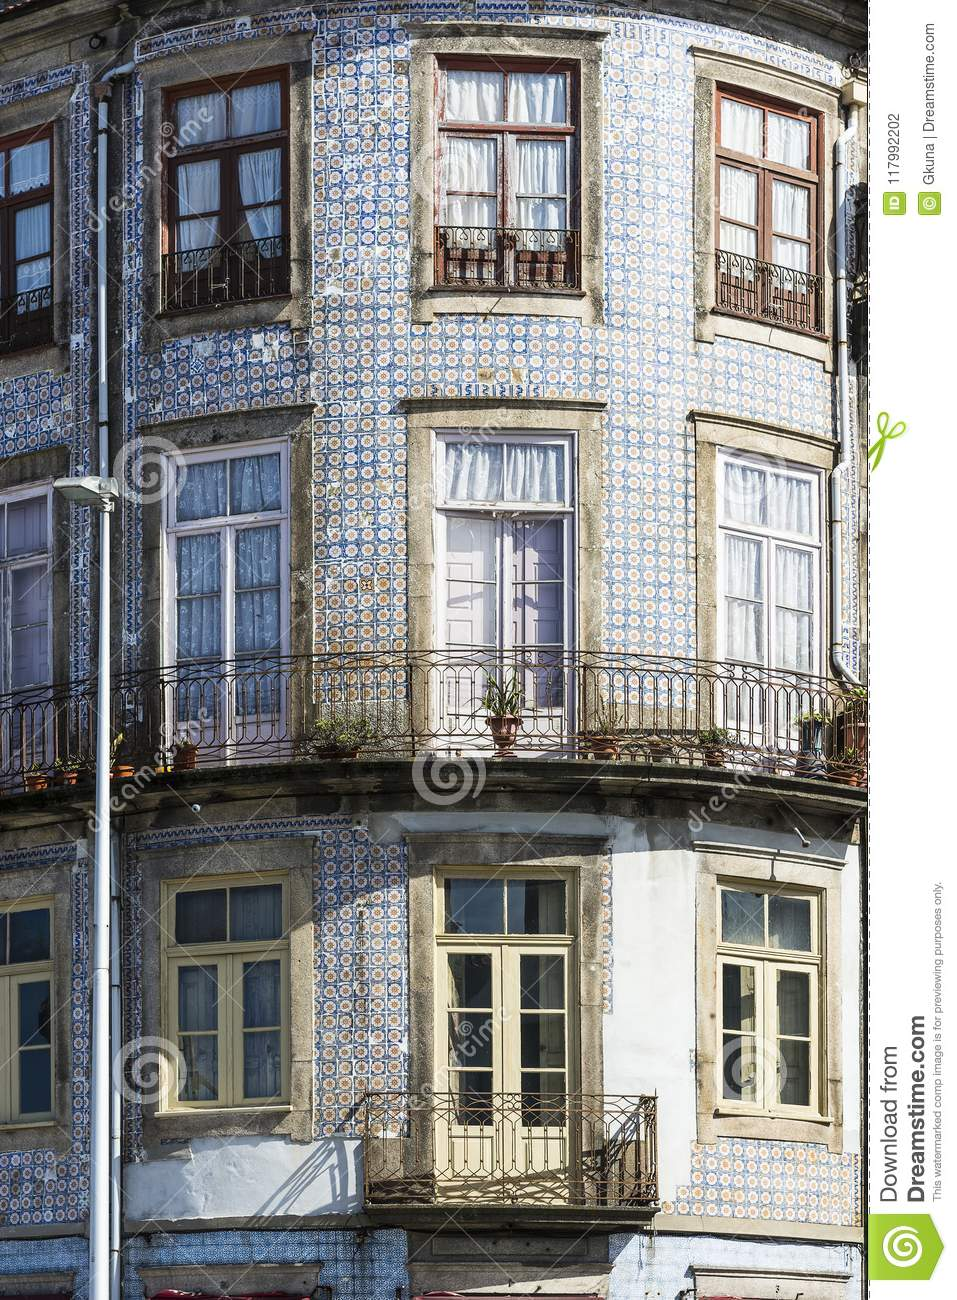 Ceramic Tiles Decorate A Facade Stock Photo Image Of Portugal